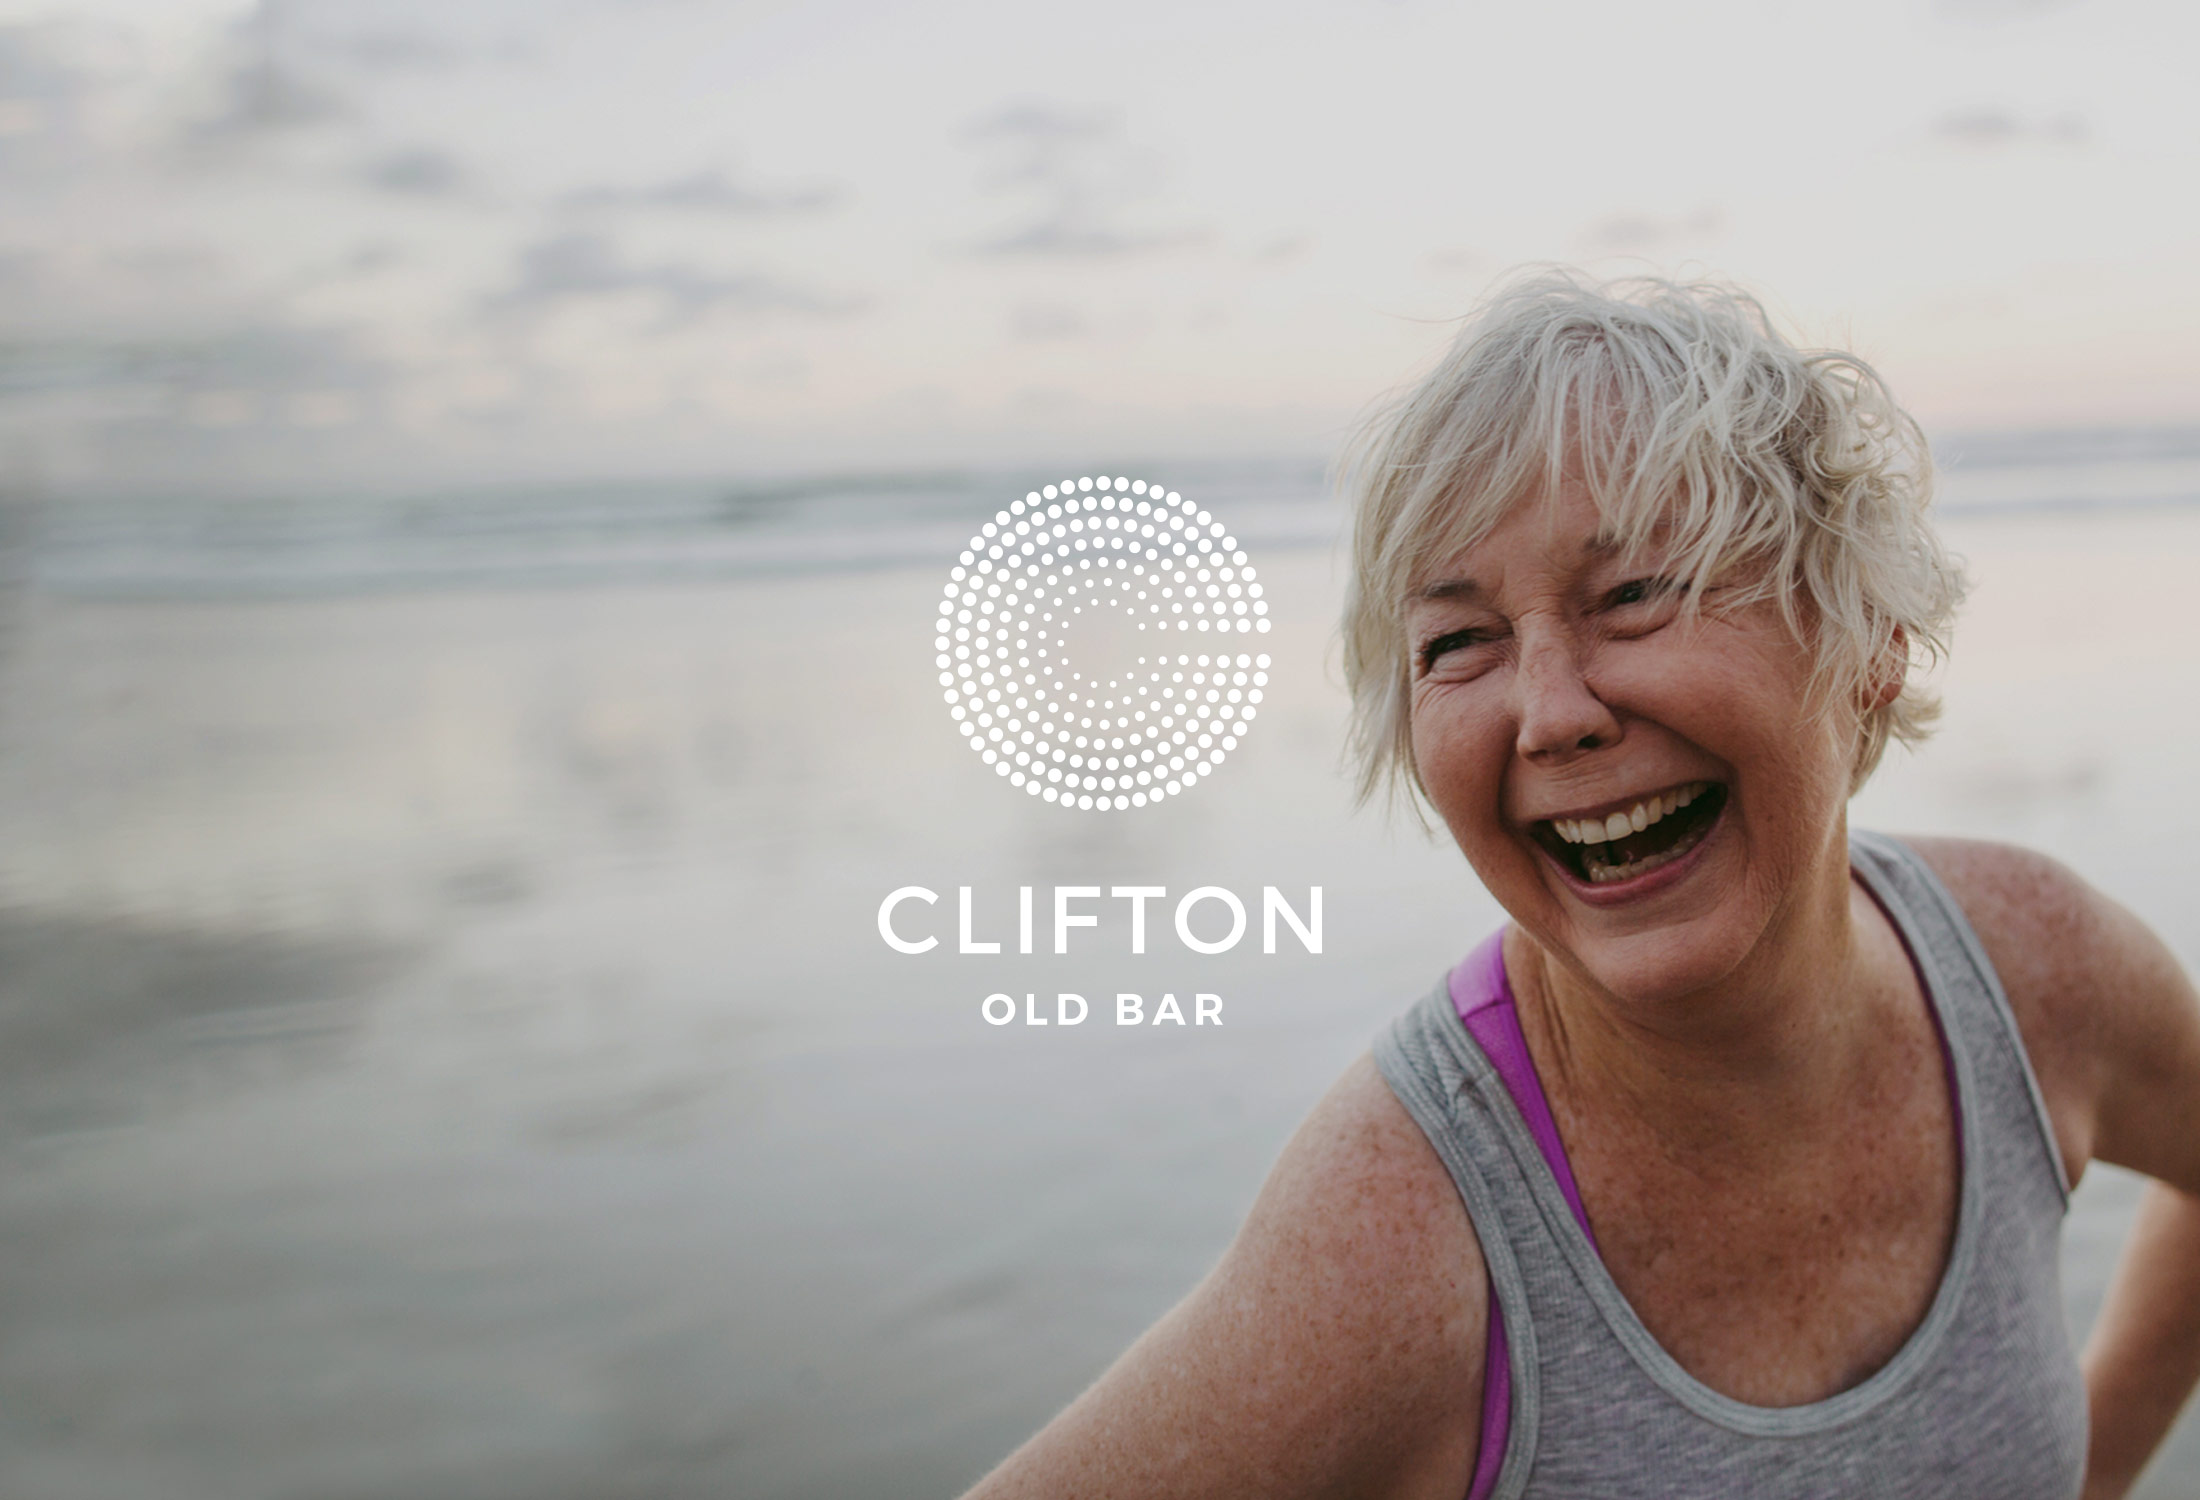 Clifton logo